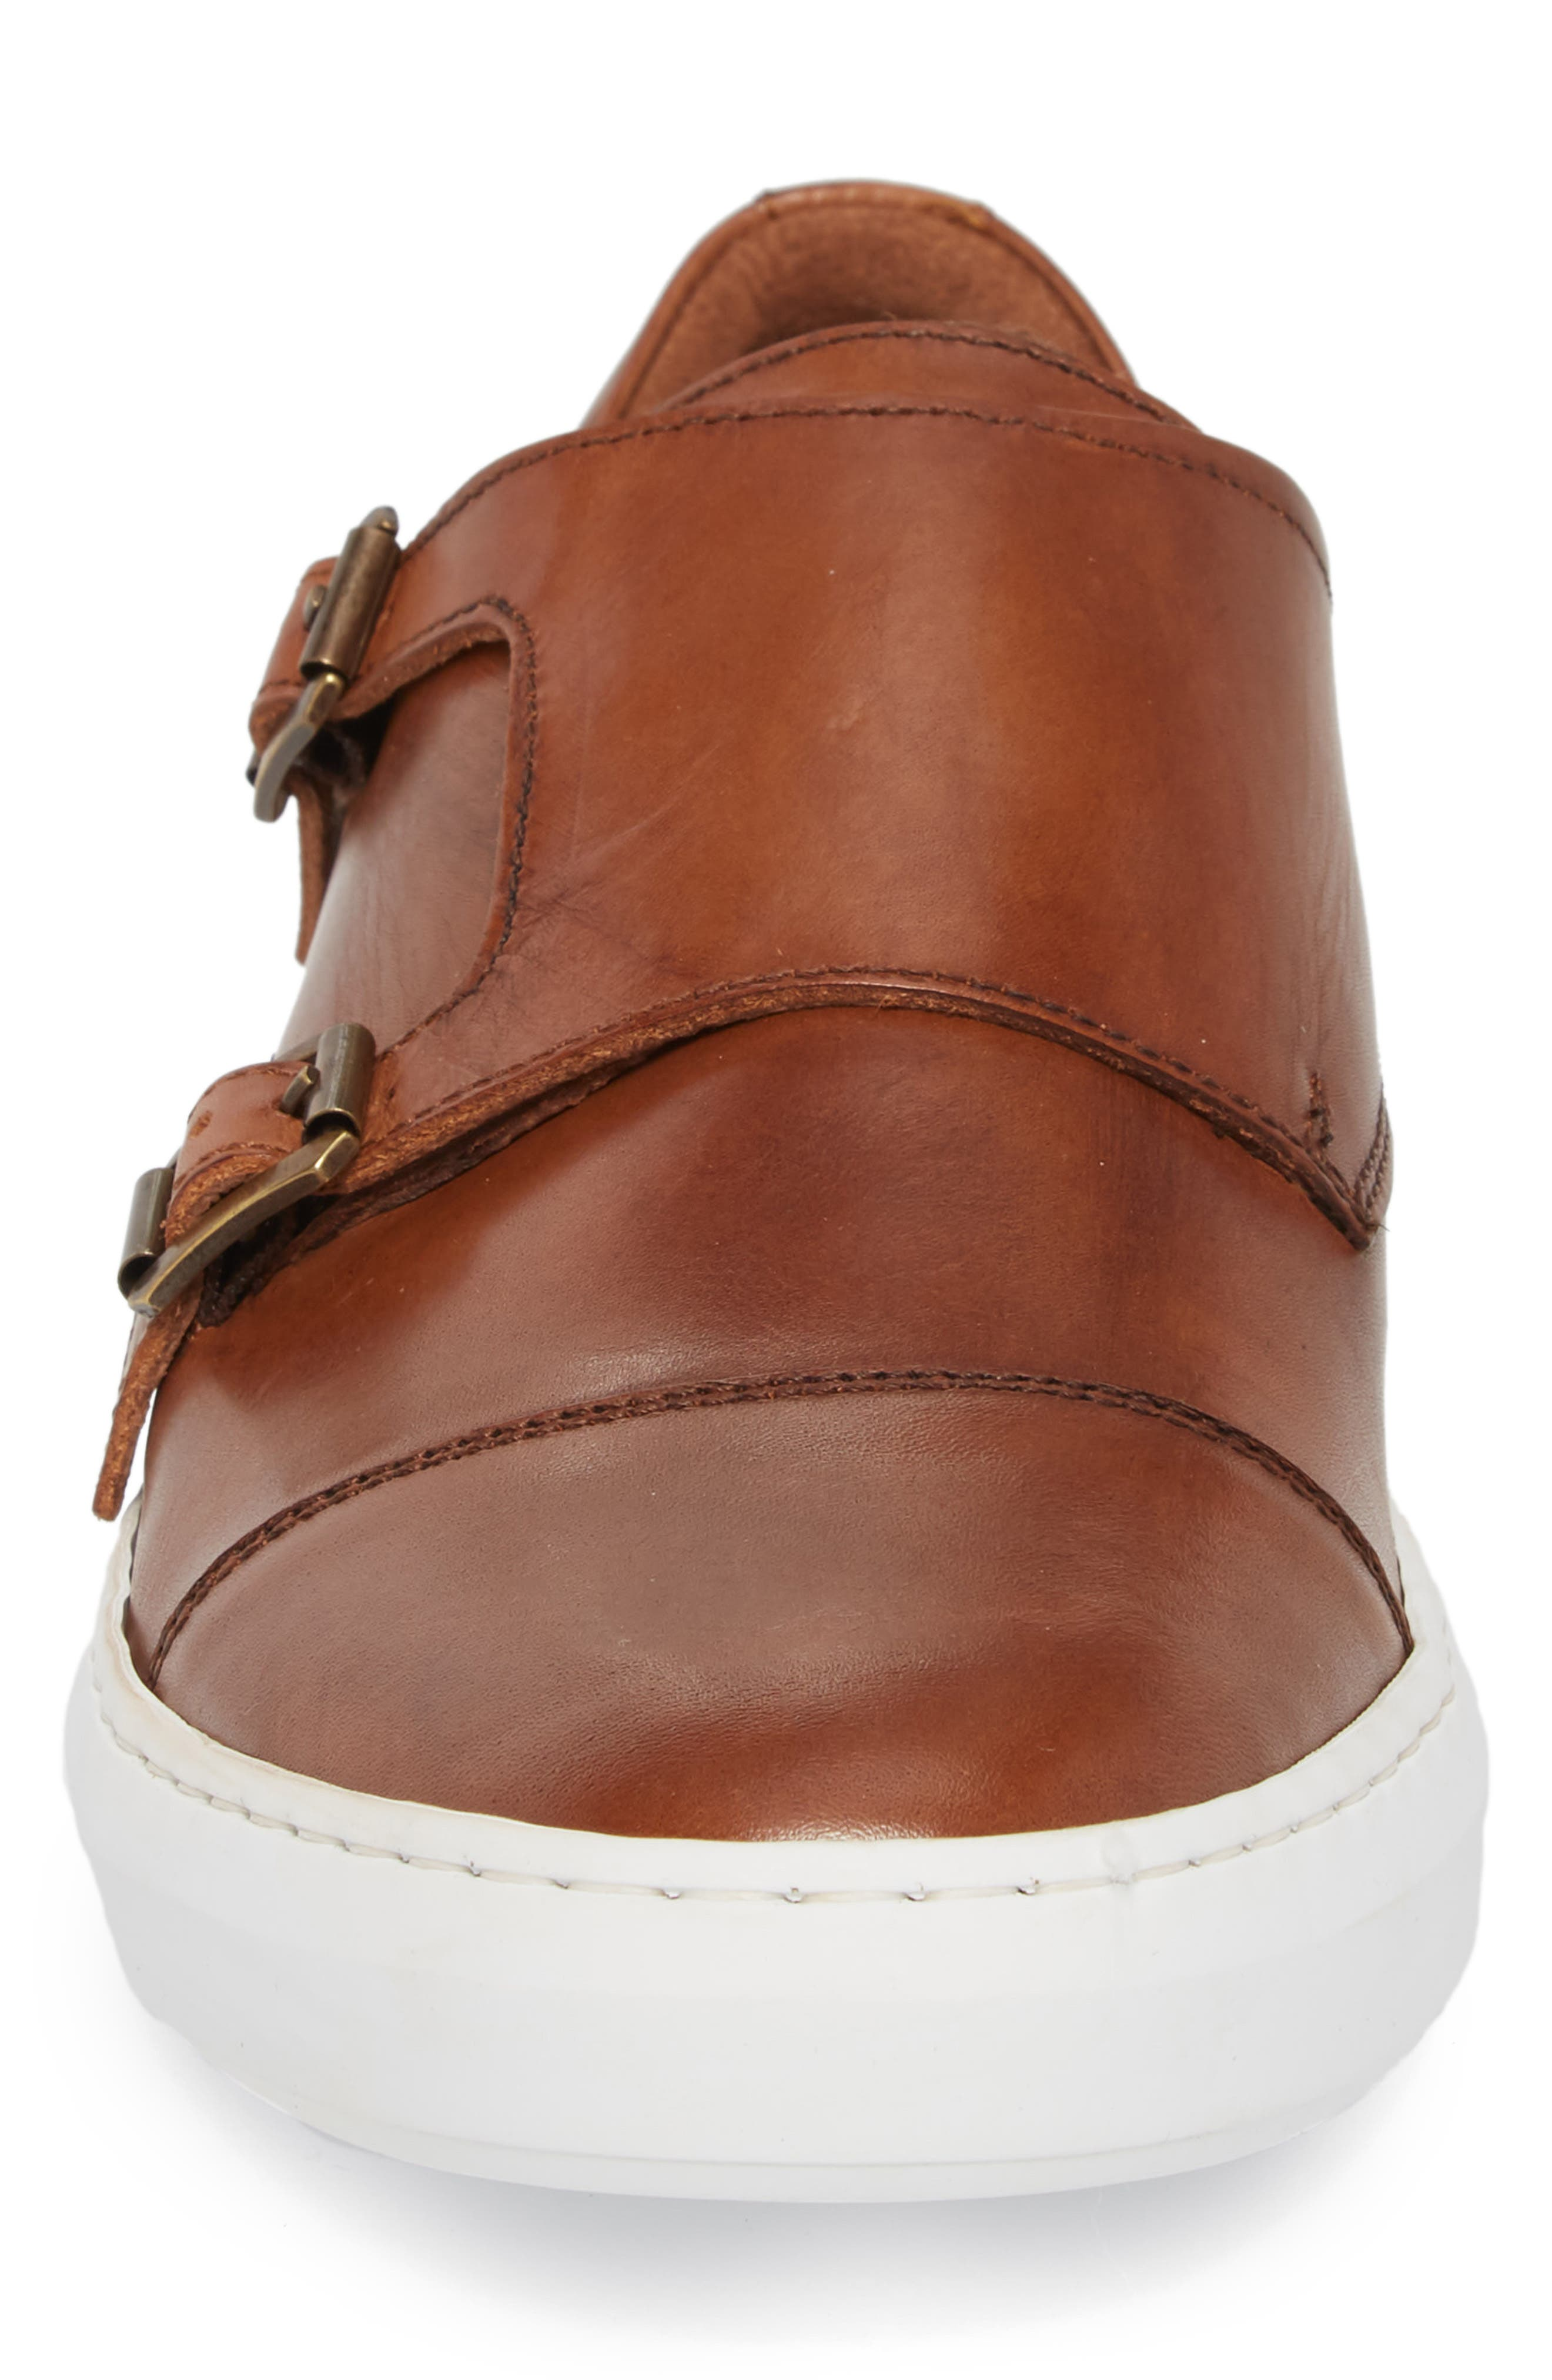 KENNETH COLE NEW YORK, Whyle Double Strap Monk Sneaker, Alternate thumbnail 4, color, COGNAC LEATHER